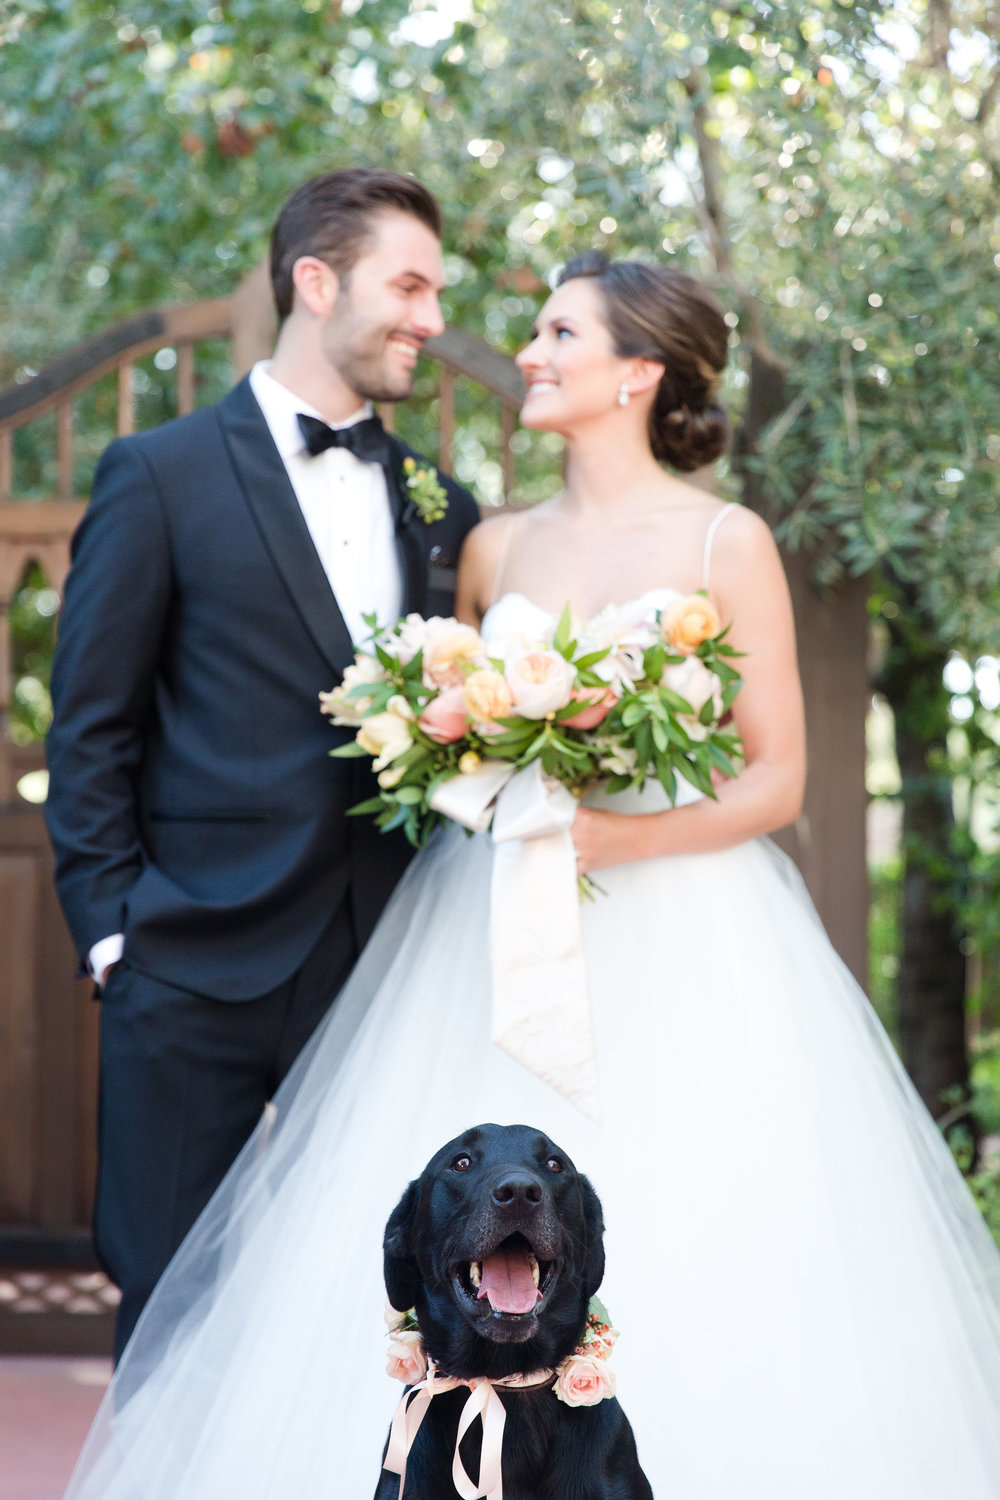 peach and mint wedding, blush and green wedding, Arizona Phoenix Scottsdale wedding planner, wedding dress, peach flowers, blush flowers, garden bouquet, boutonniere, black tux, mother of bride wedding dress bouquet s  ash, dog in wedding, wedding dog wreath, desert wedding